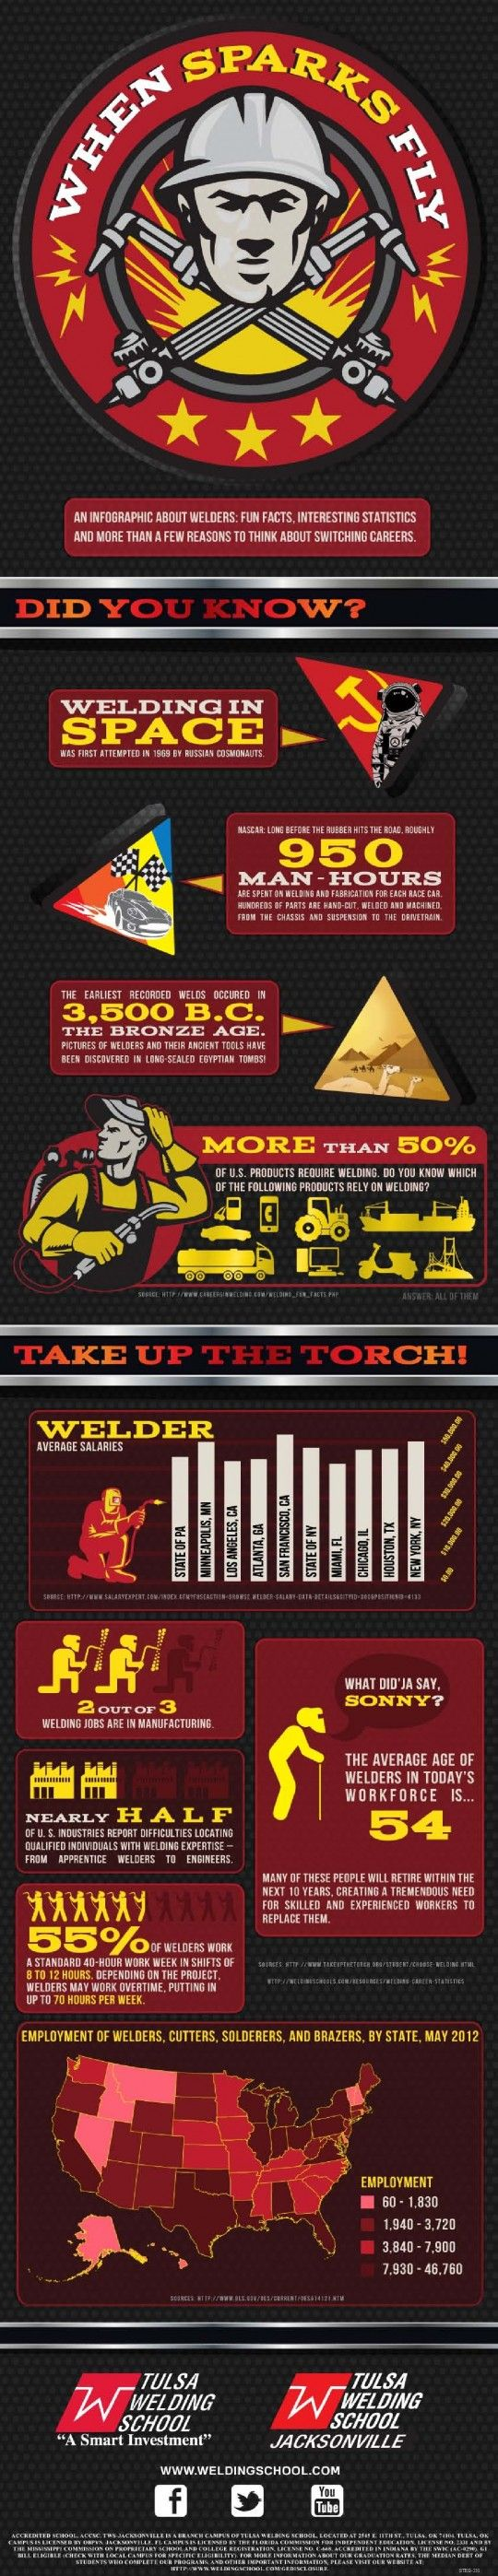 welding fun facts statistics to make you switch your career welding fun facts statistics to make you switch your career welding is an ancient practice that has almost literally shaped our society more t